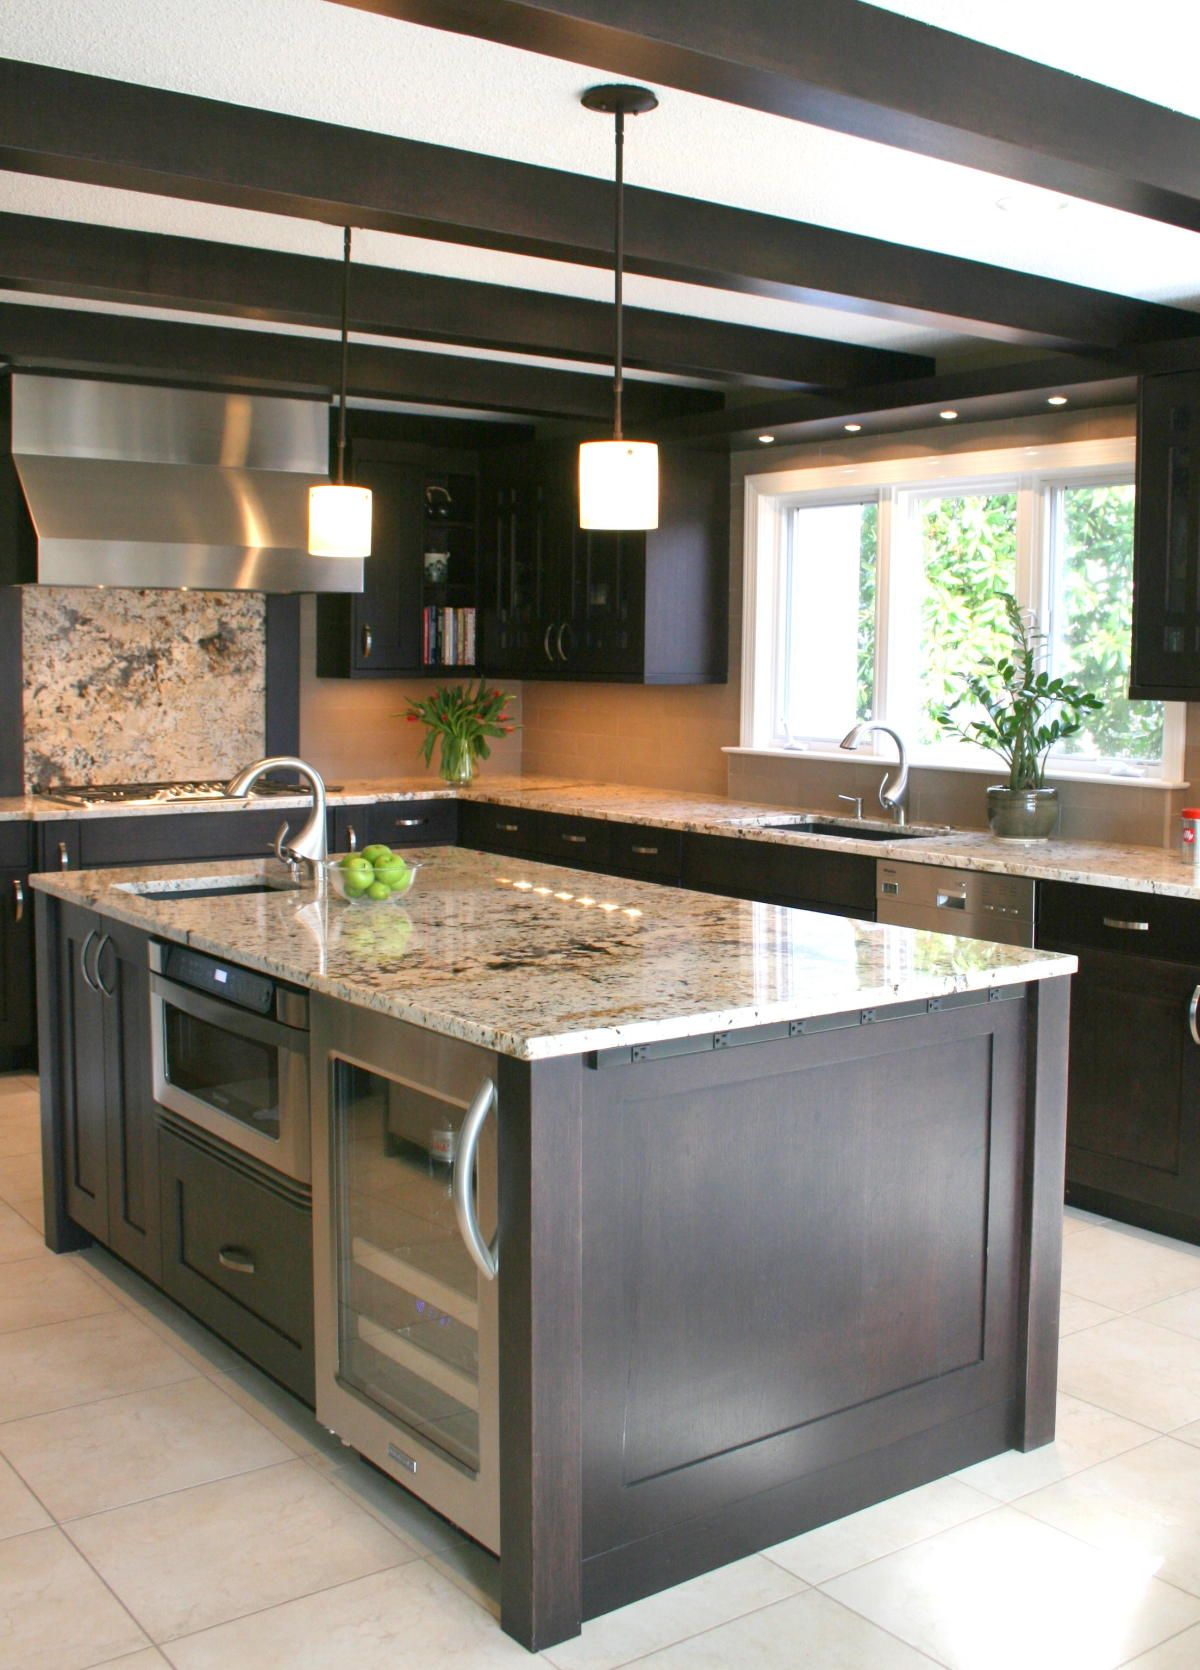 The working island appliances in the kitchen island Kitchen island design ideas